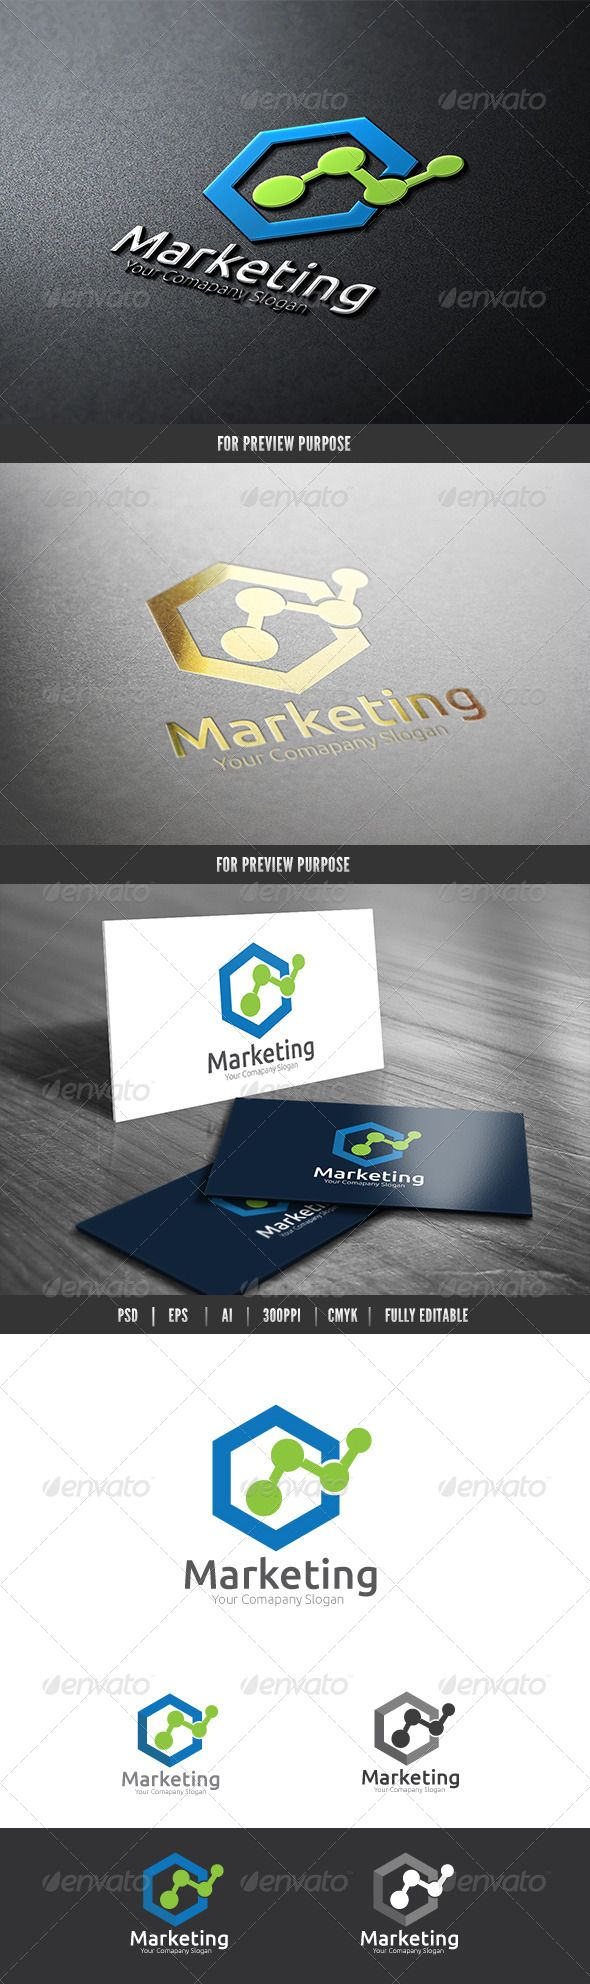 Marketing by babeer Logo Description:The logo is Easy to edit to your own company name.The logo is designed in vector for highly resizable and printi